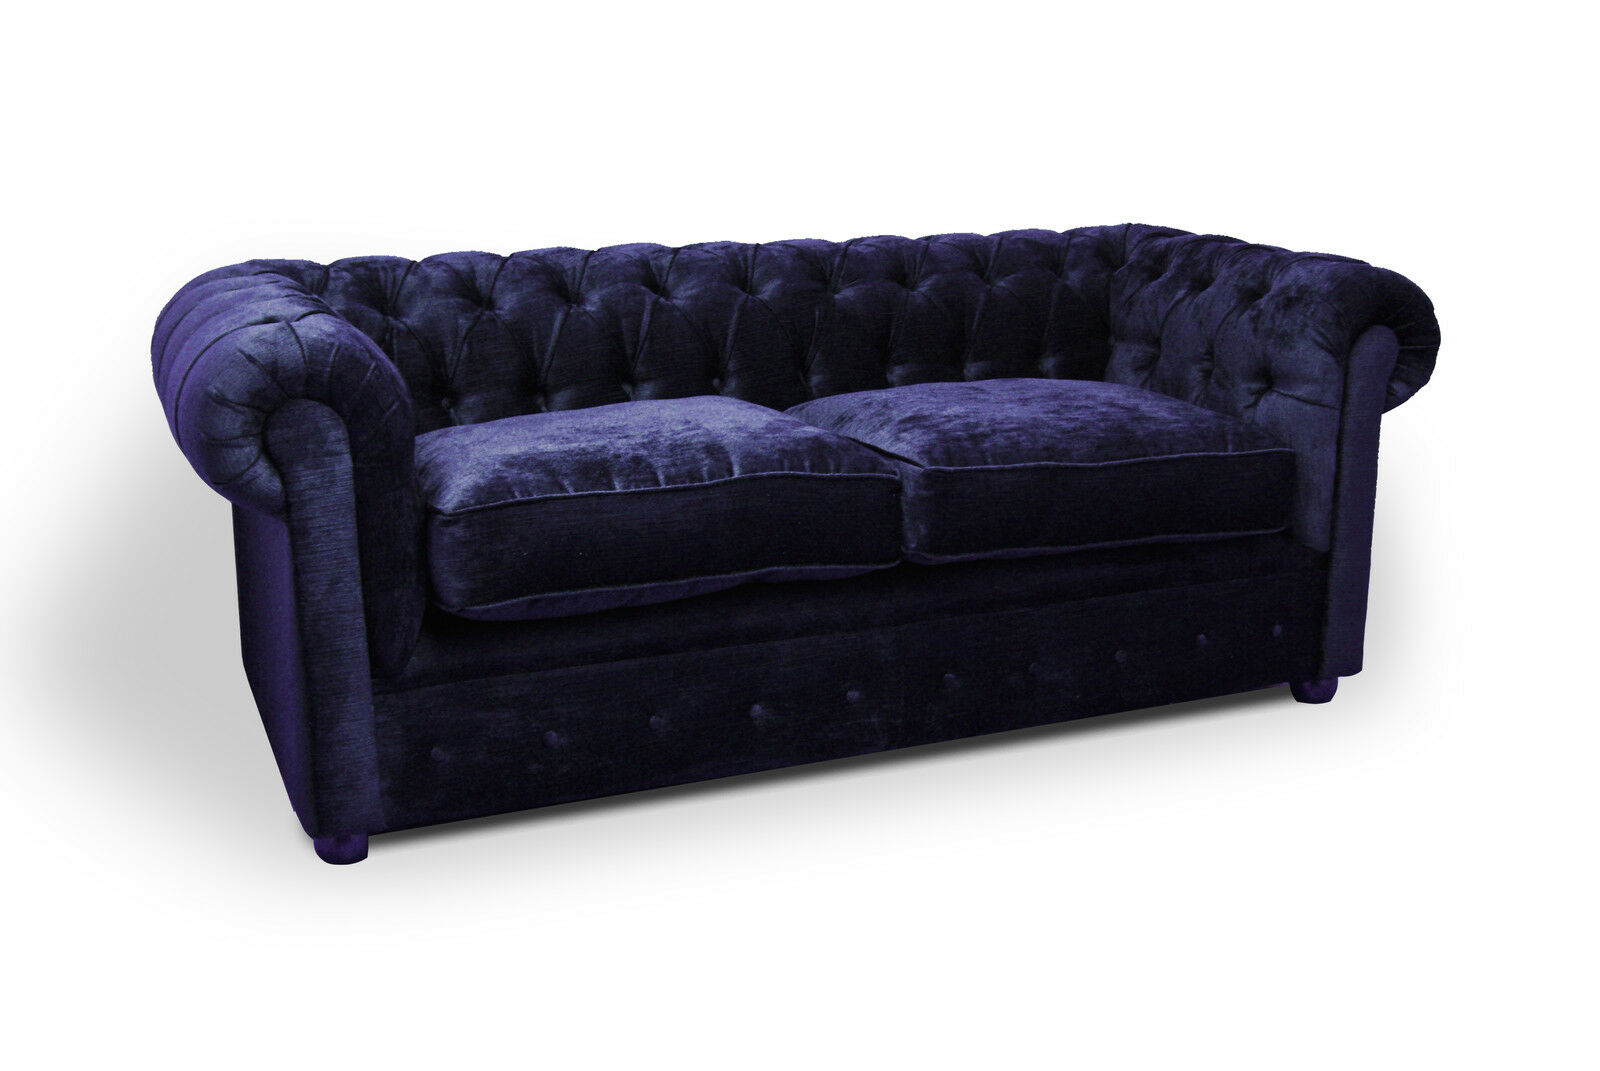 Blue Velvet Chesterfield Sofa Italian Blue Velvet Chesterfield Sofa Any Colour 2 3 4